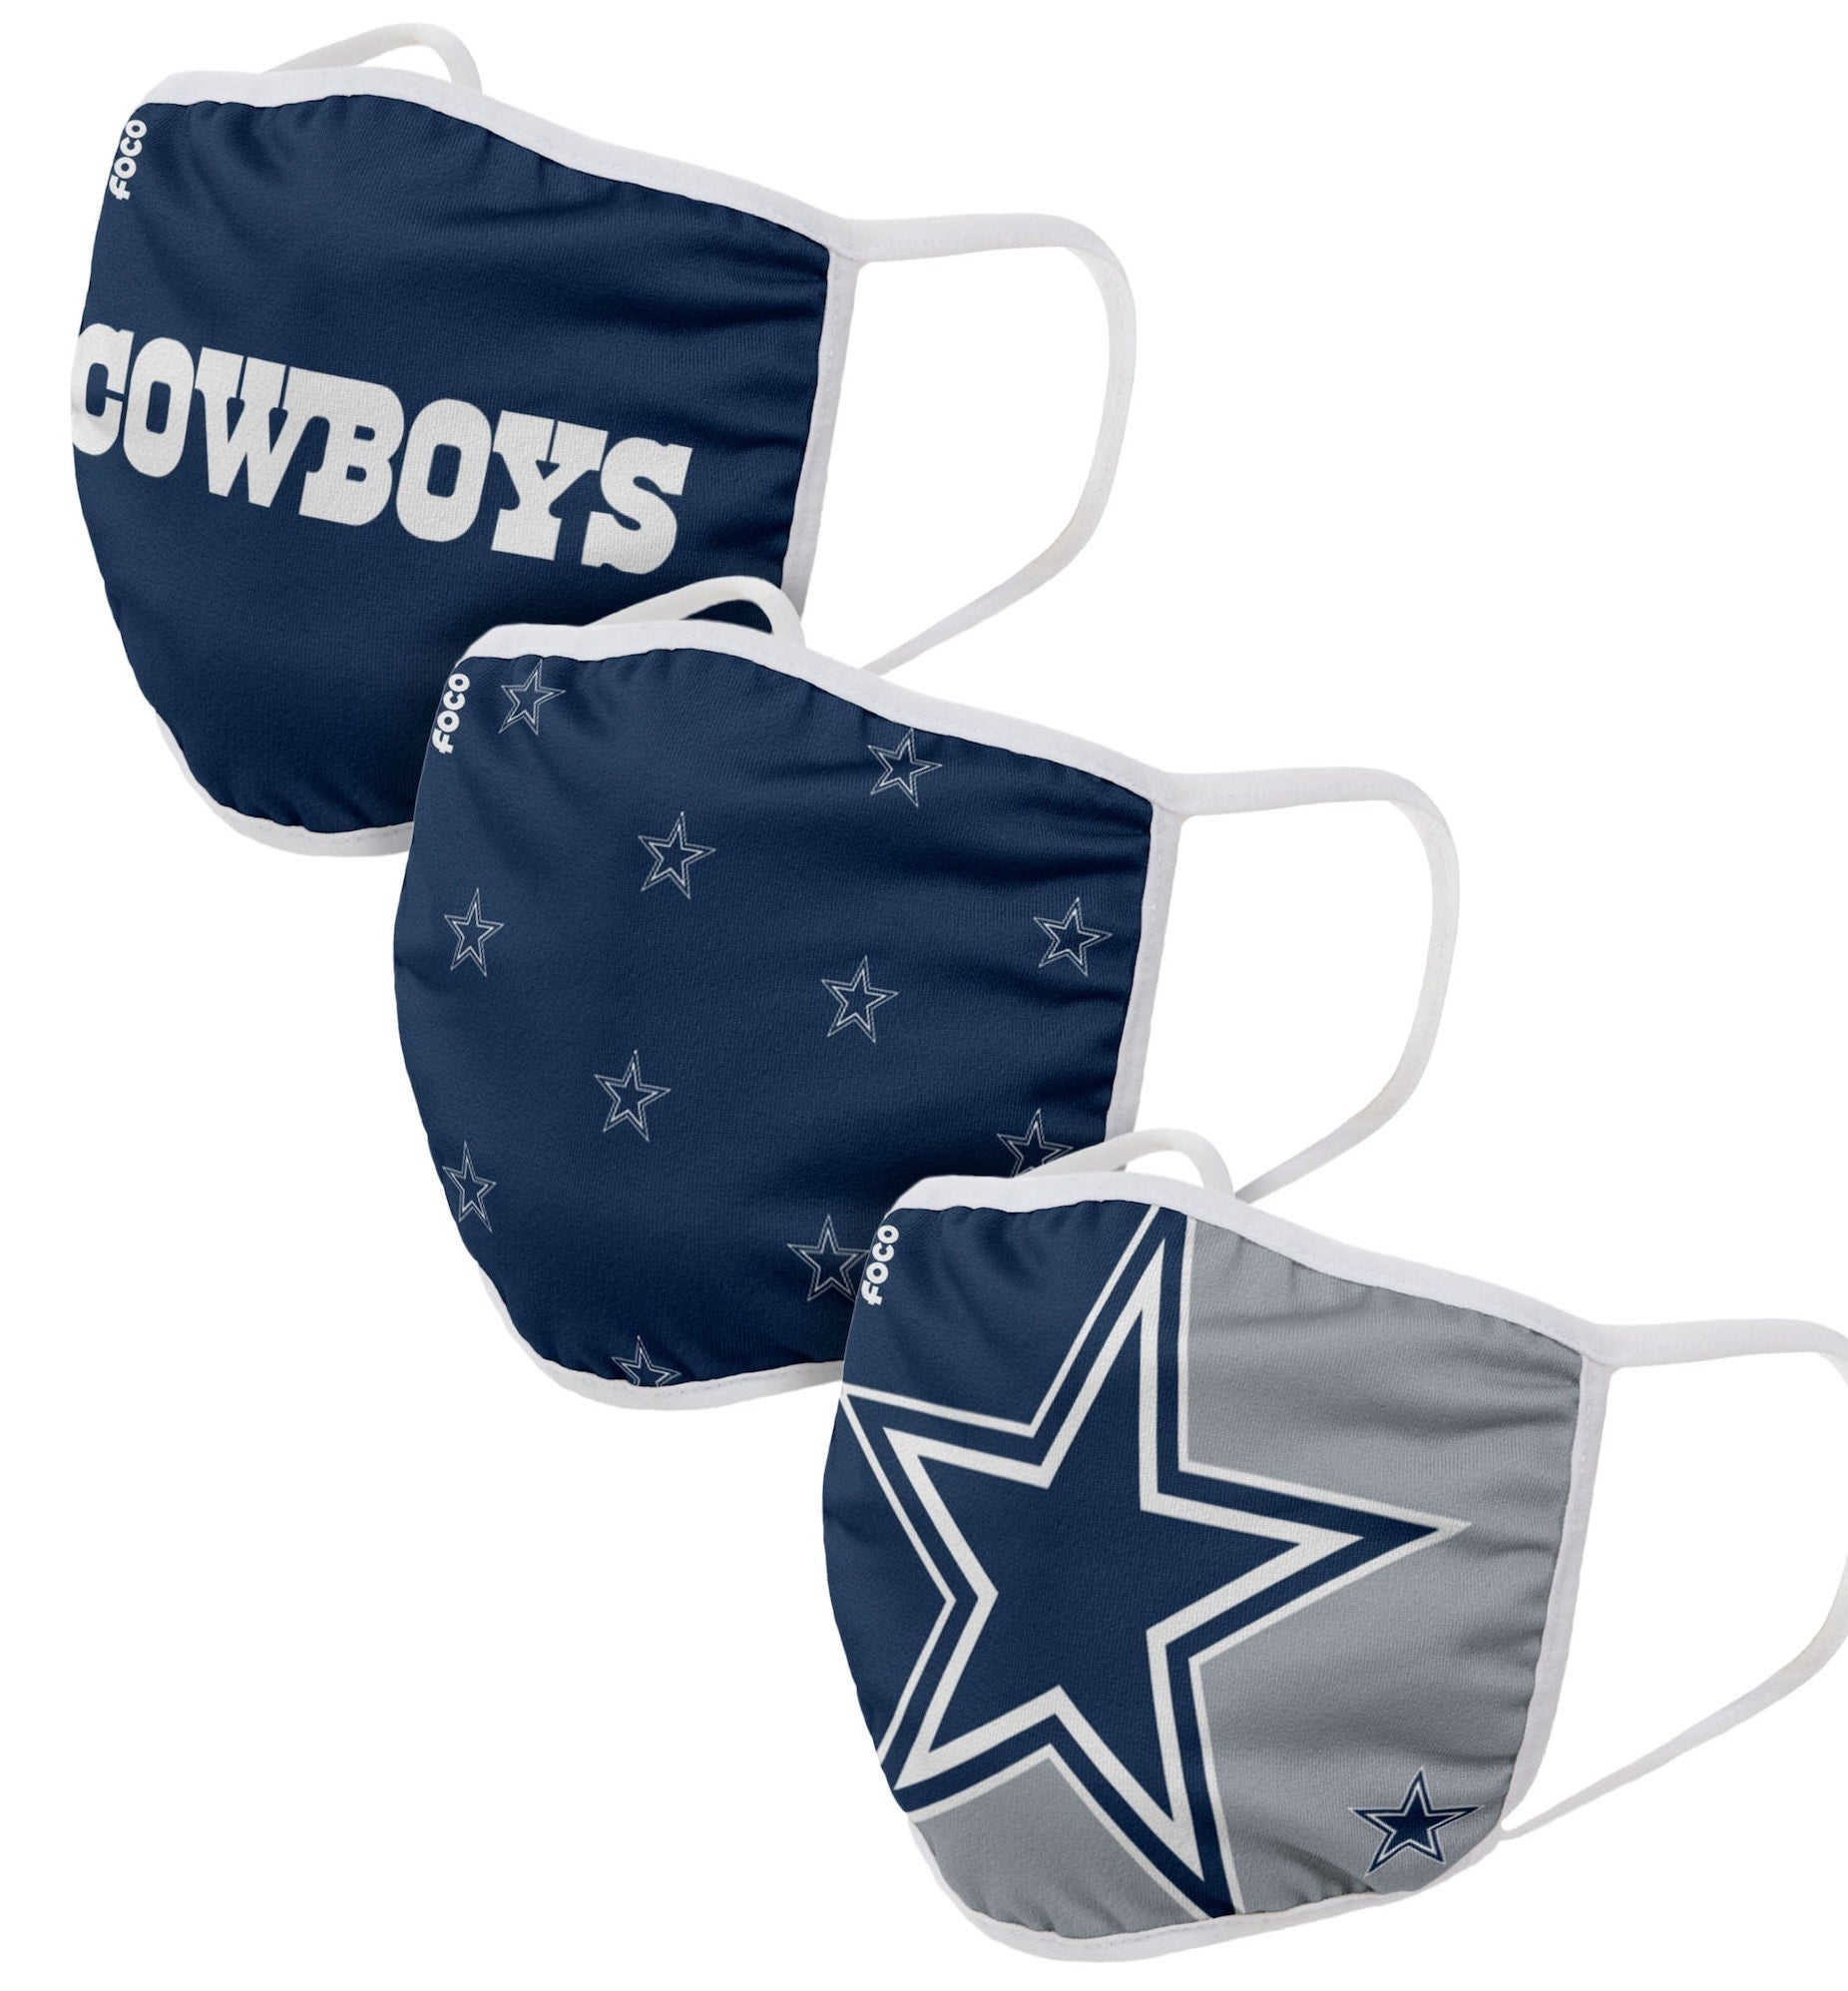 Officially Licensed Sports Team Face Covering (3-Pack)